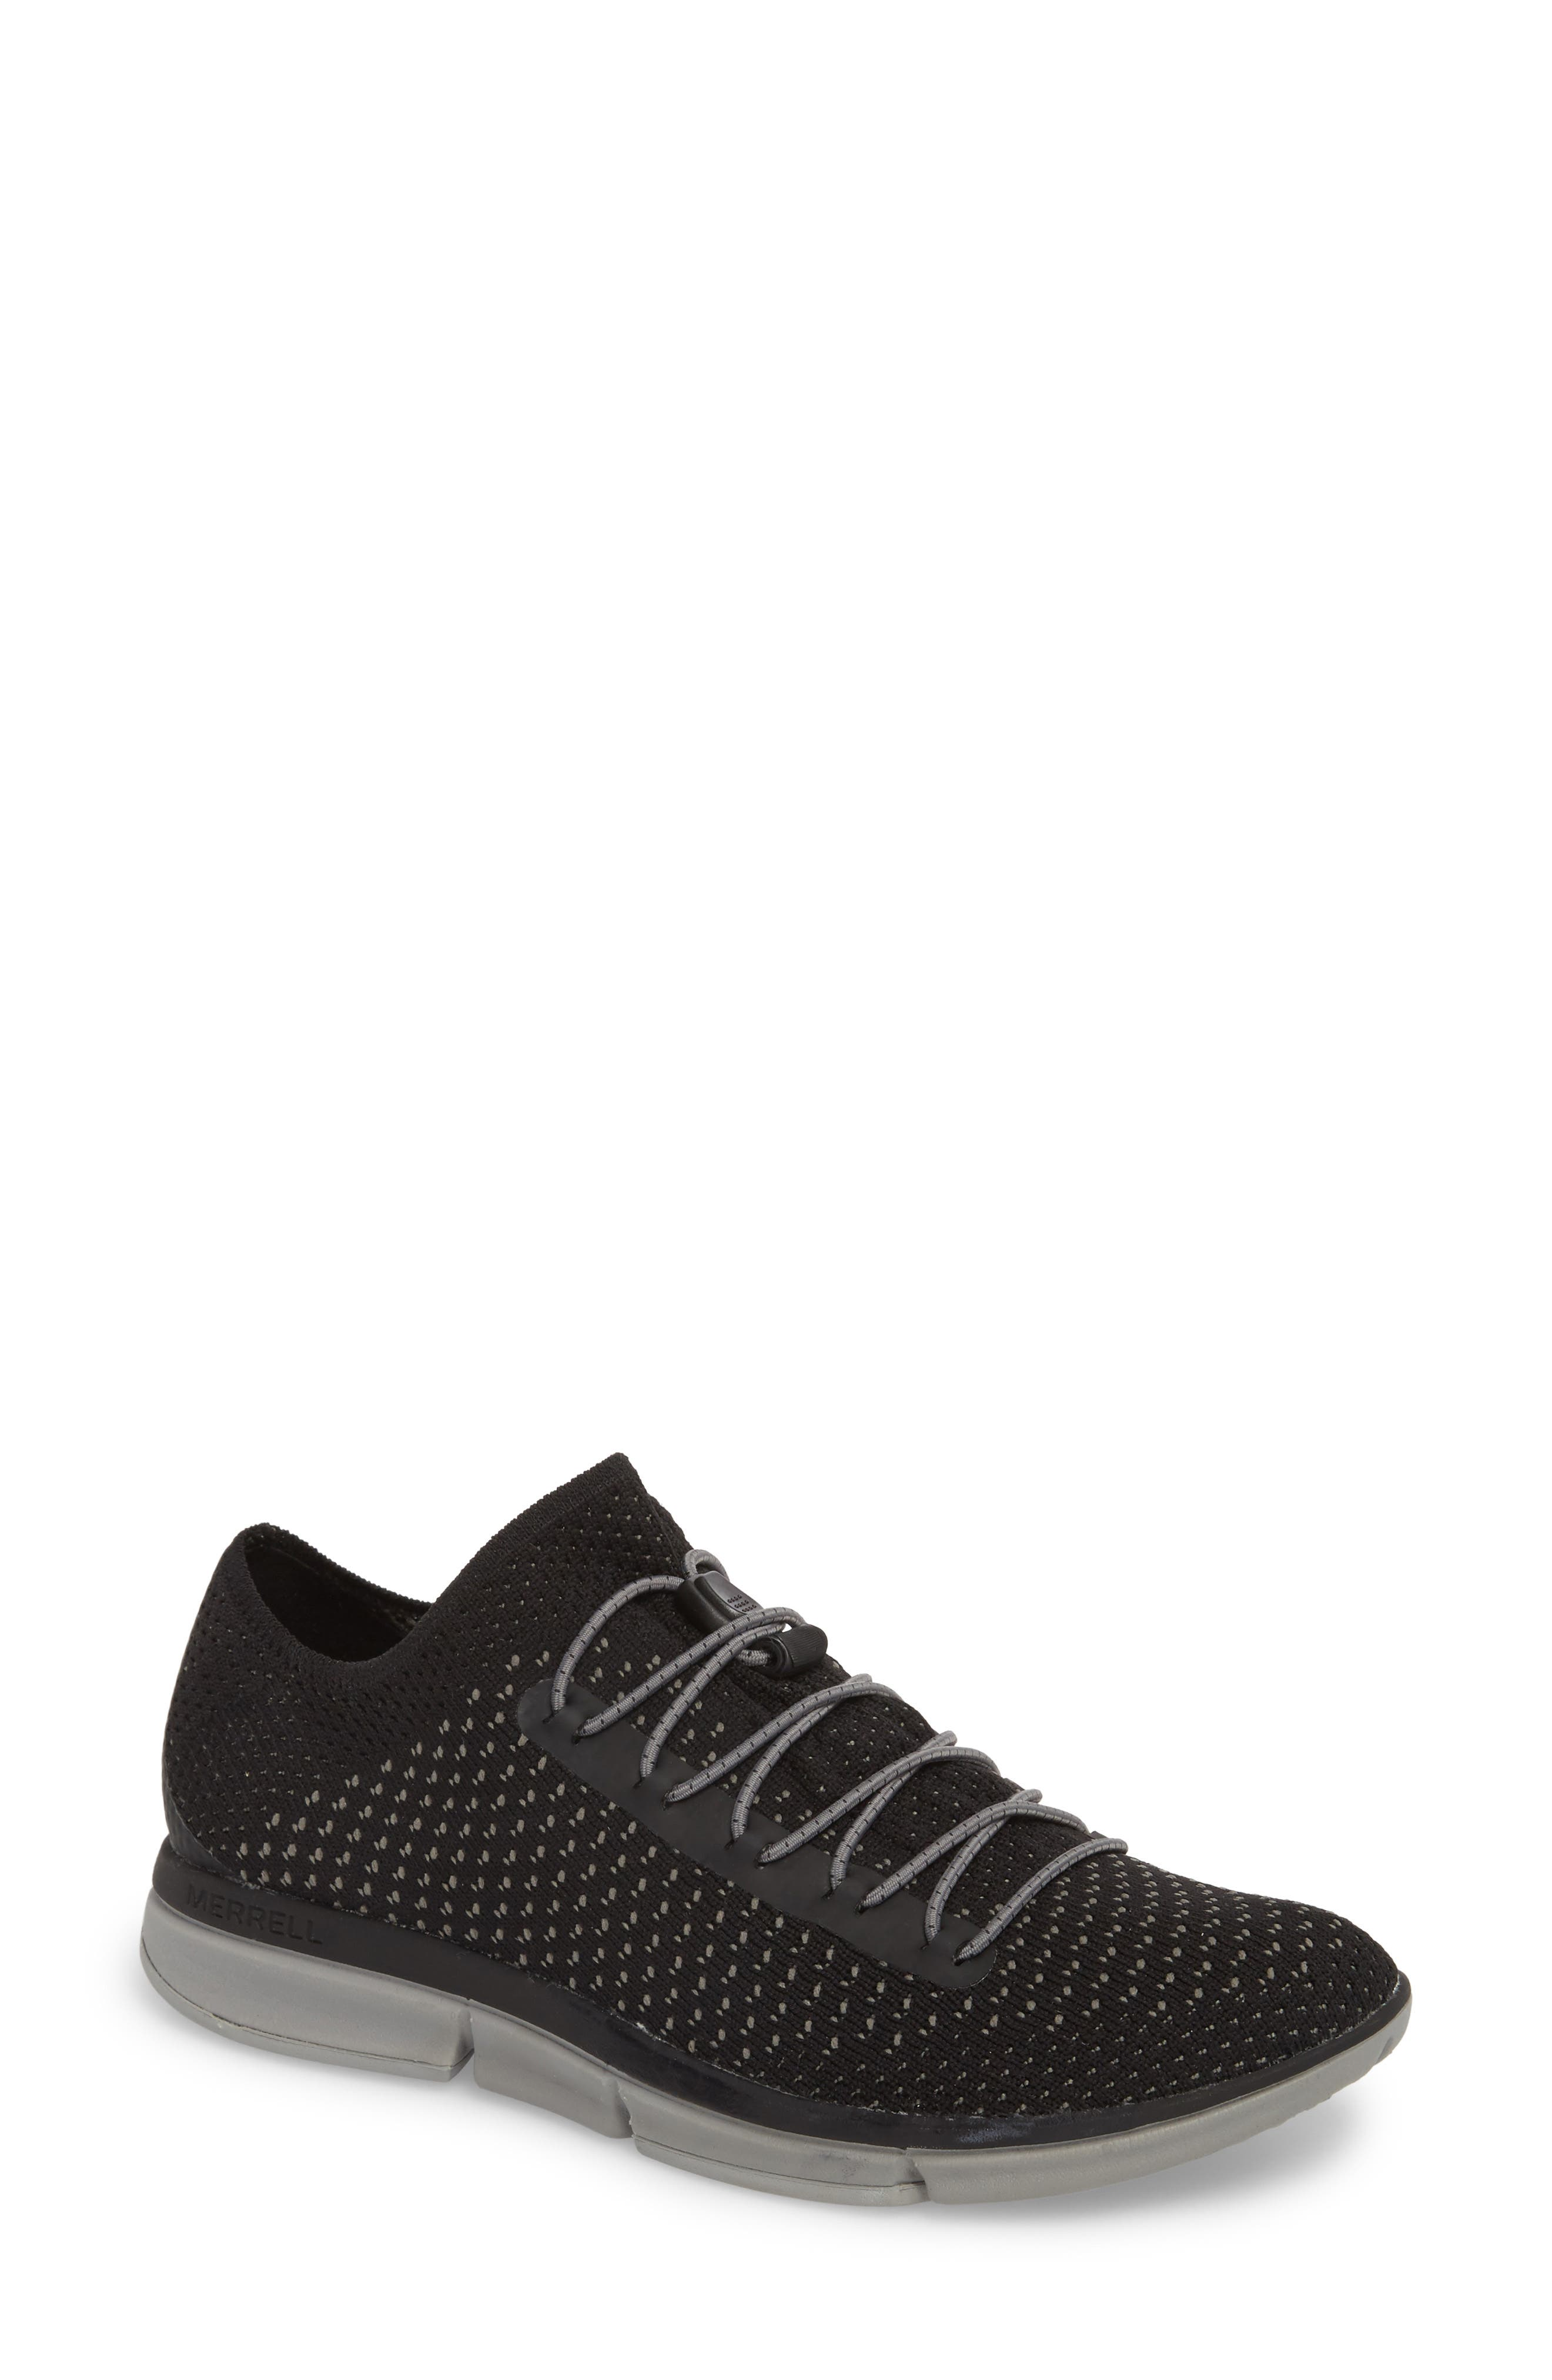 Zoe Sojourn Lace Knit Sneaker,                             Main thumbnail 1, color,                             001